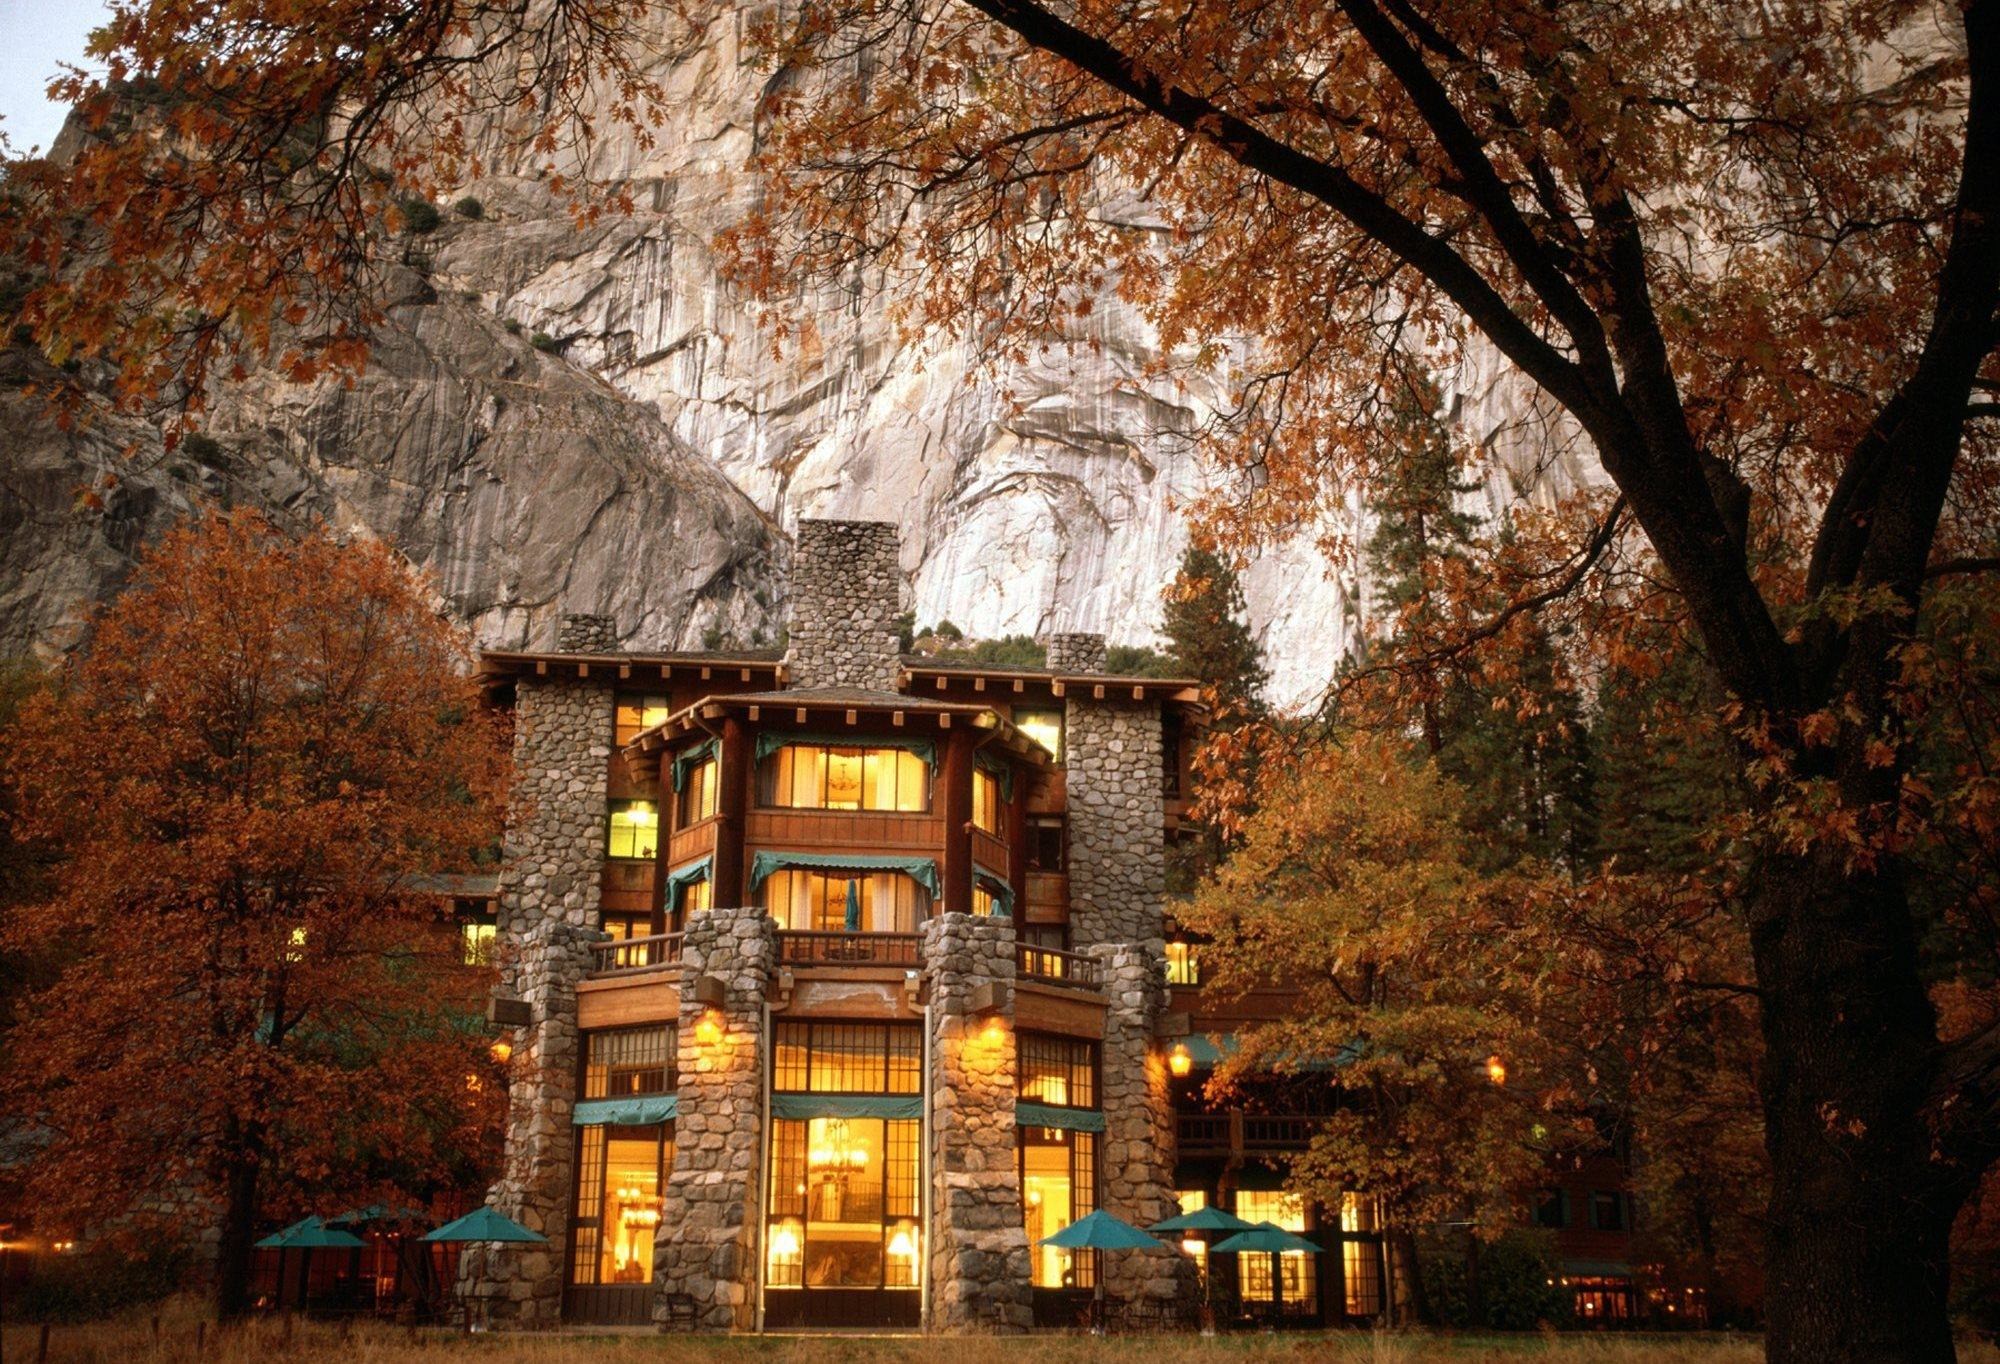 The Ahwahnee Lodge in California's Yosemite. (Photo courtesy Delaware North Companies)